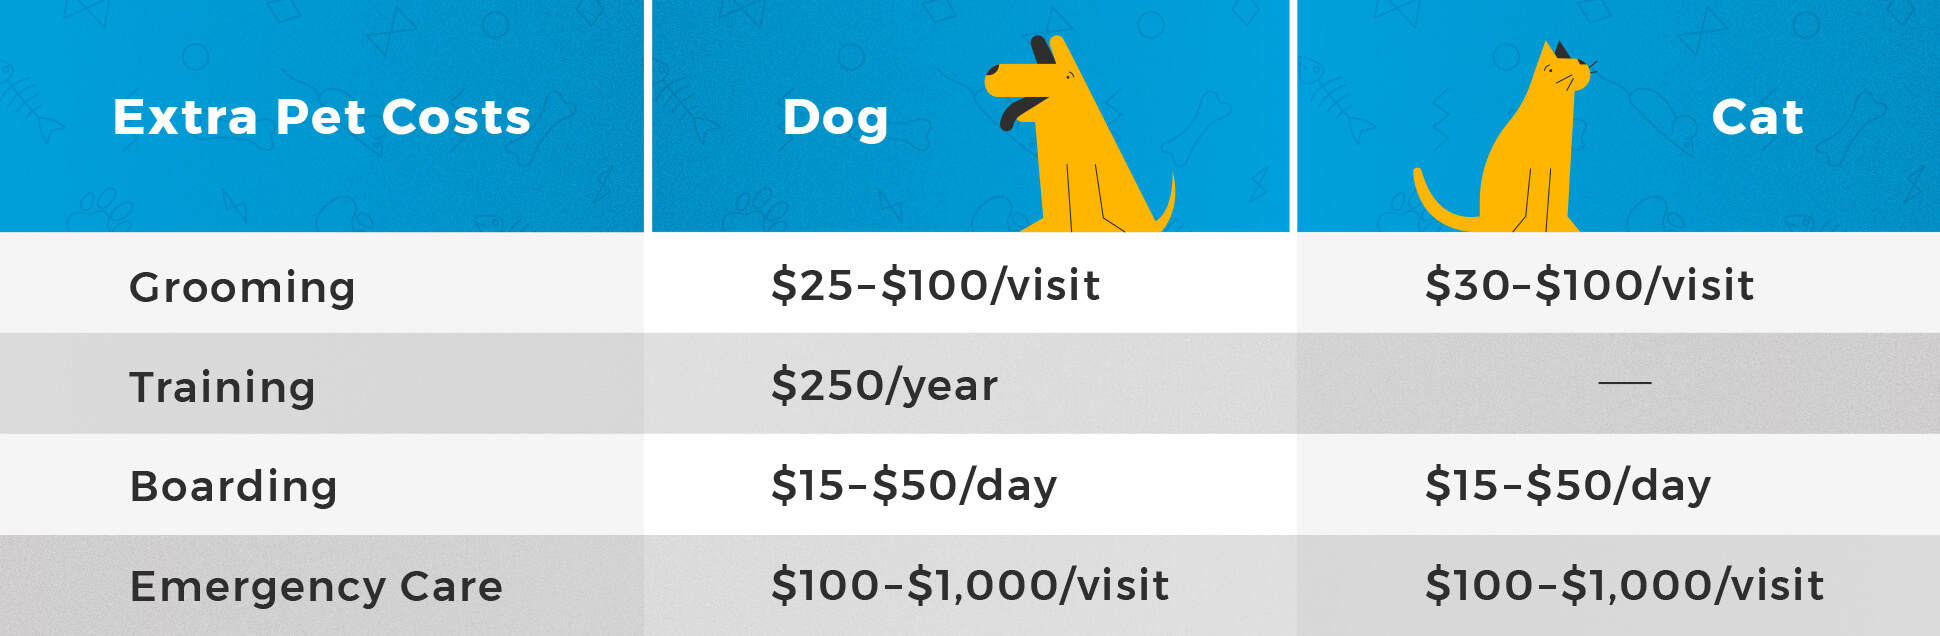 extra-pet-costs-chart